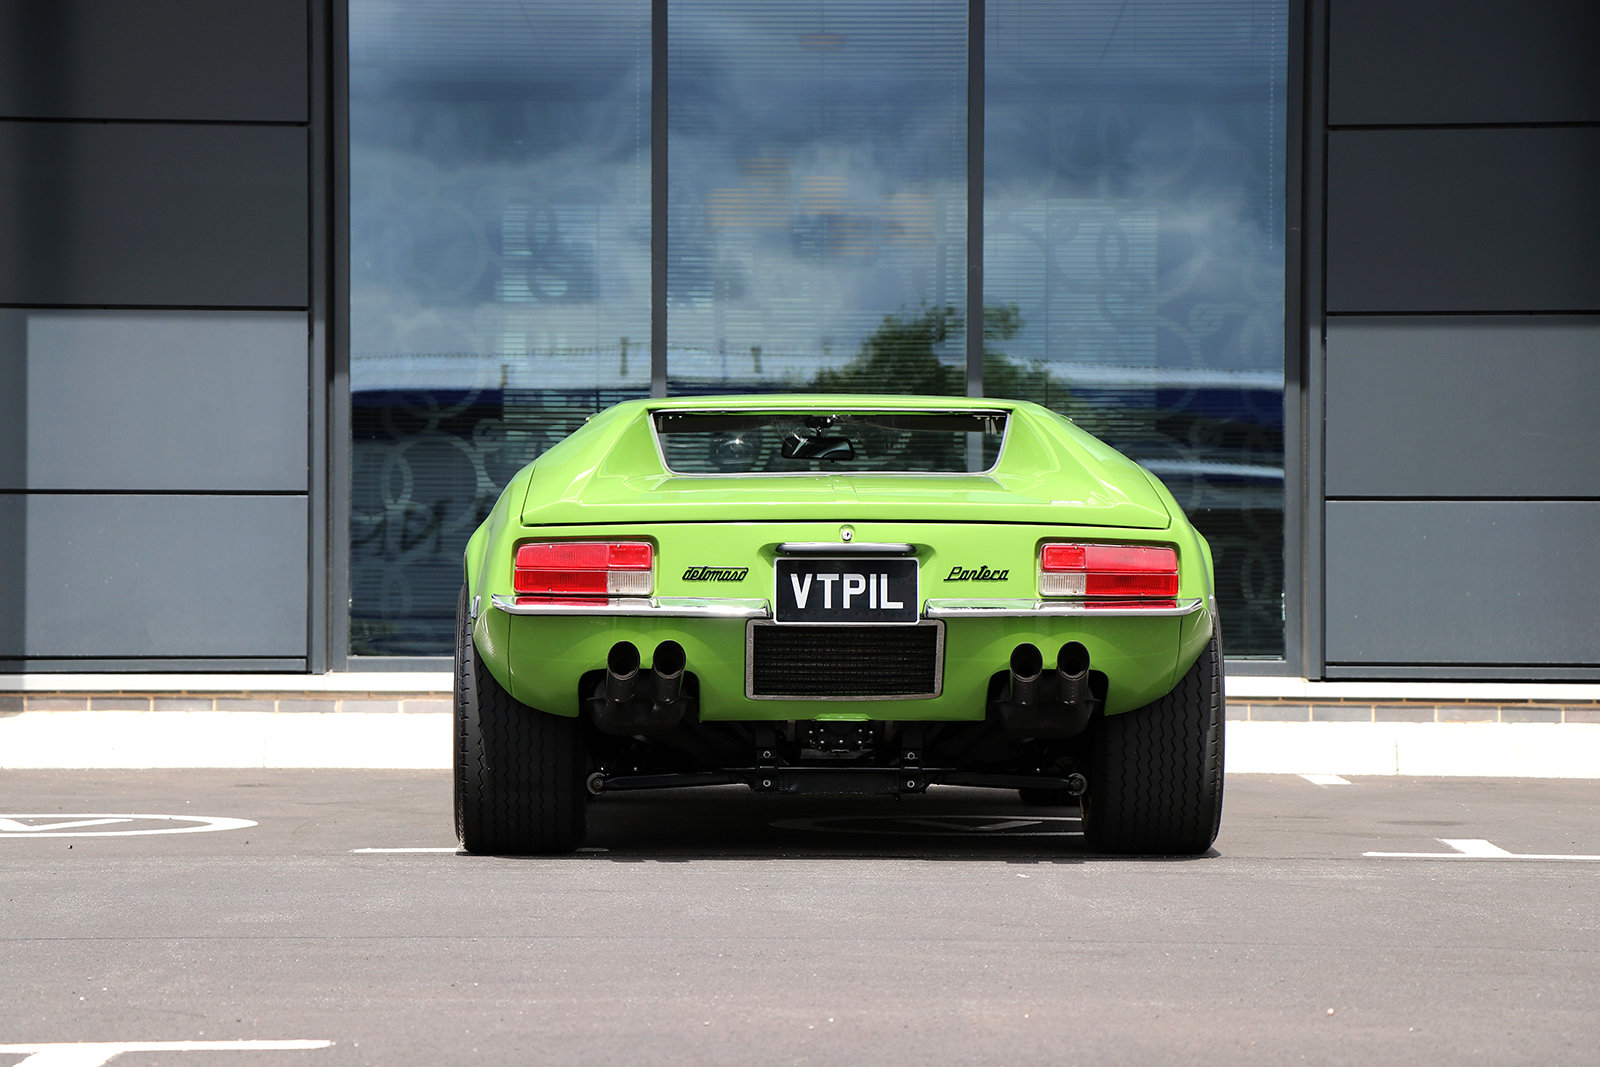 For Sale UK Fully Restored 1972 De Tomaso Pantera For Sale (picture 6 of 6)